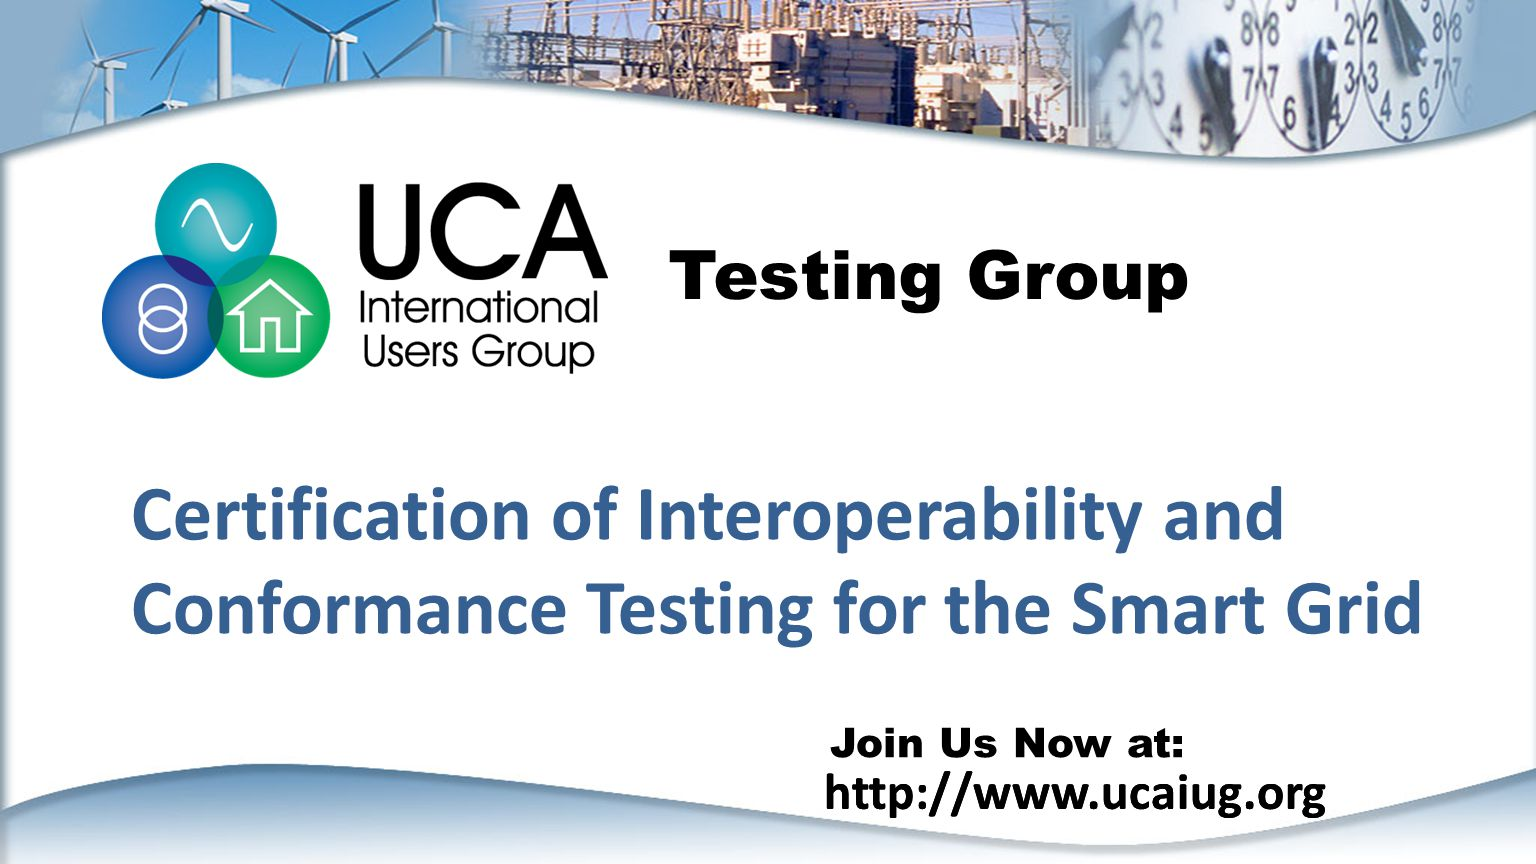 http://www.ucaiug.org Join Us Now at: http://www.ucaiug.org Certification of Interoperability and Conformance Testing for the Smart Grid Testing Group